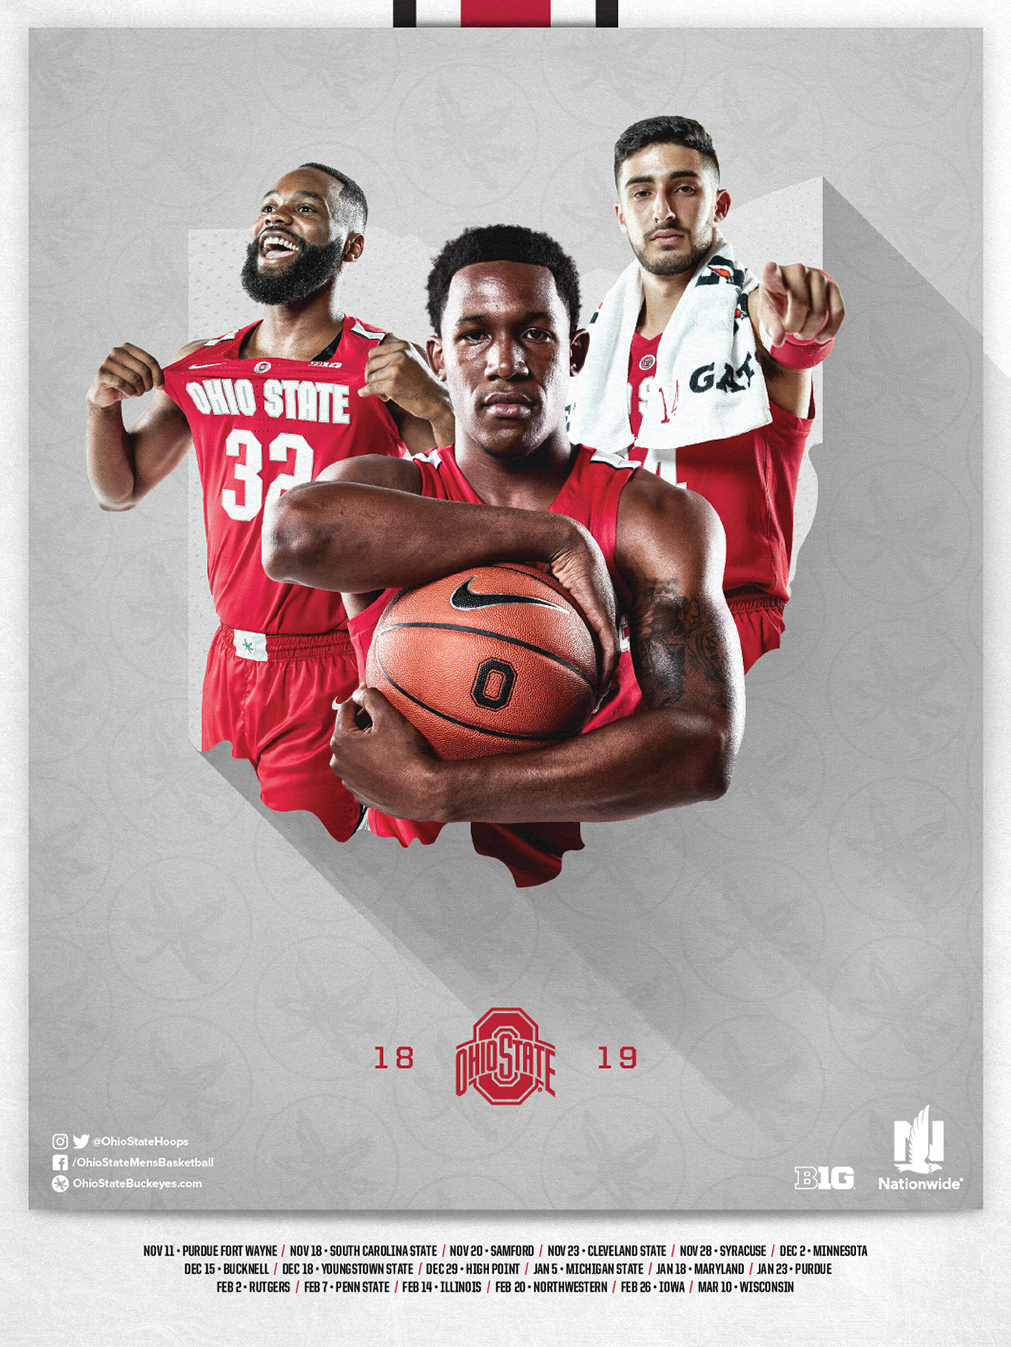 Fall Mobile Wallpapers Schedule Posters Ohio State Buckeyes